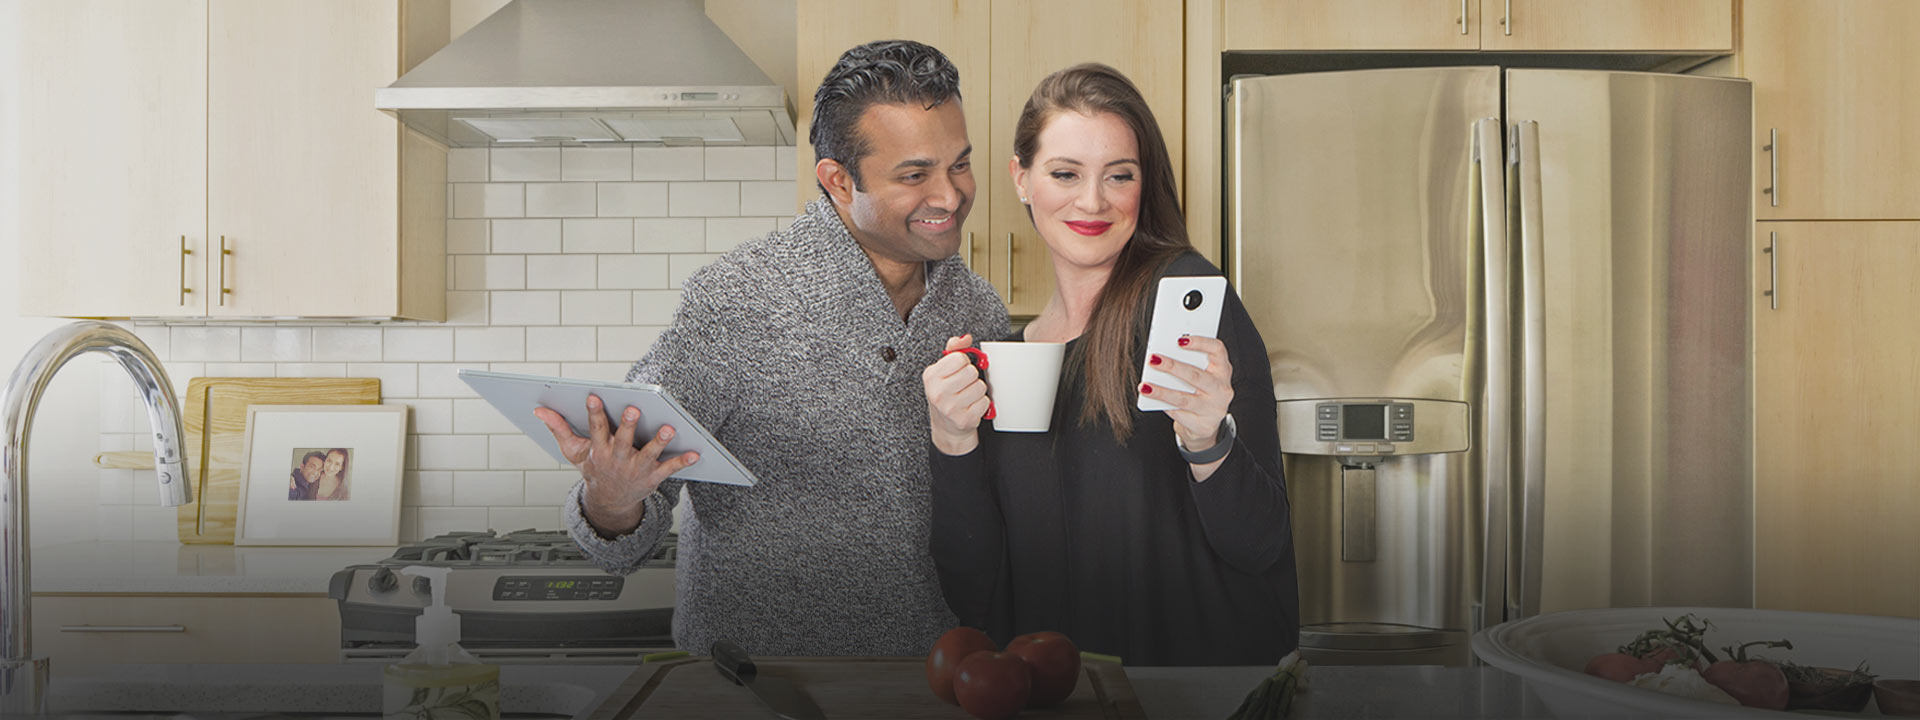 A couple standing together in a modern kitchen. The man is holding a tablet and the woman is holding a mobile phone. They are both smiling and looking at the screen on the mobile phone.